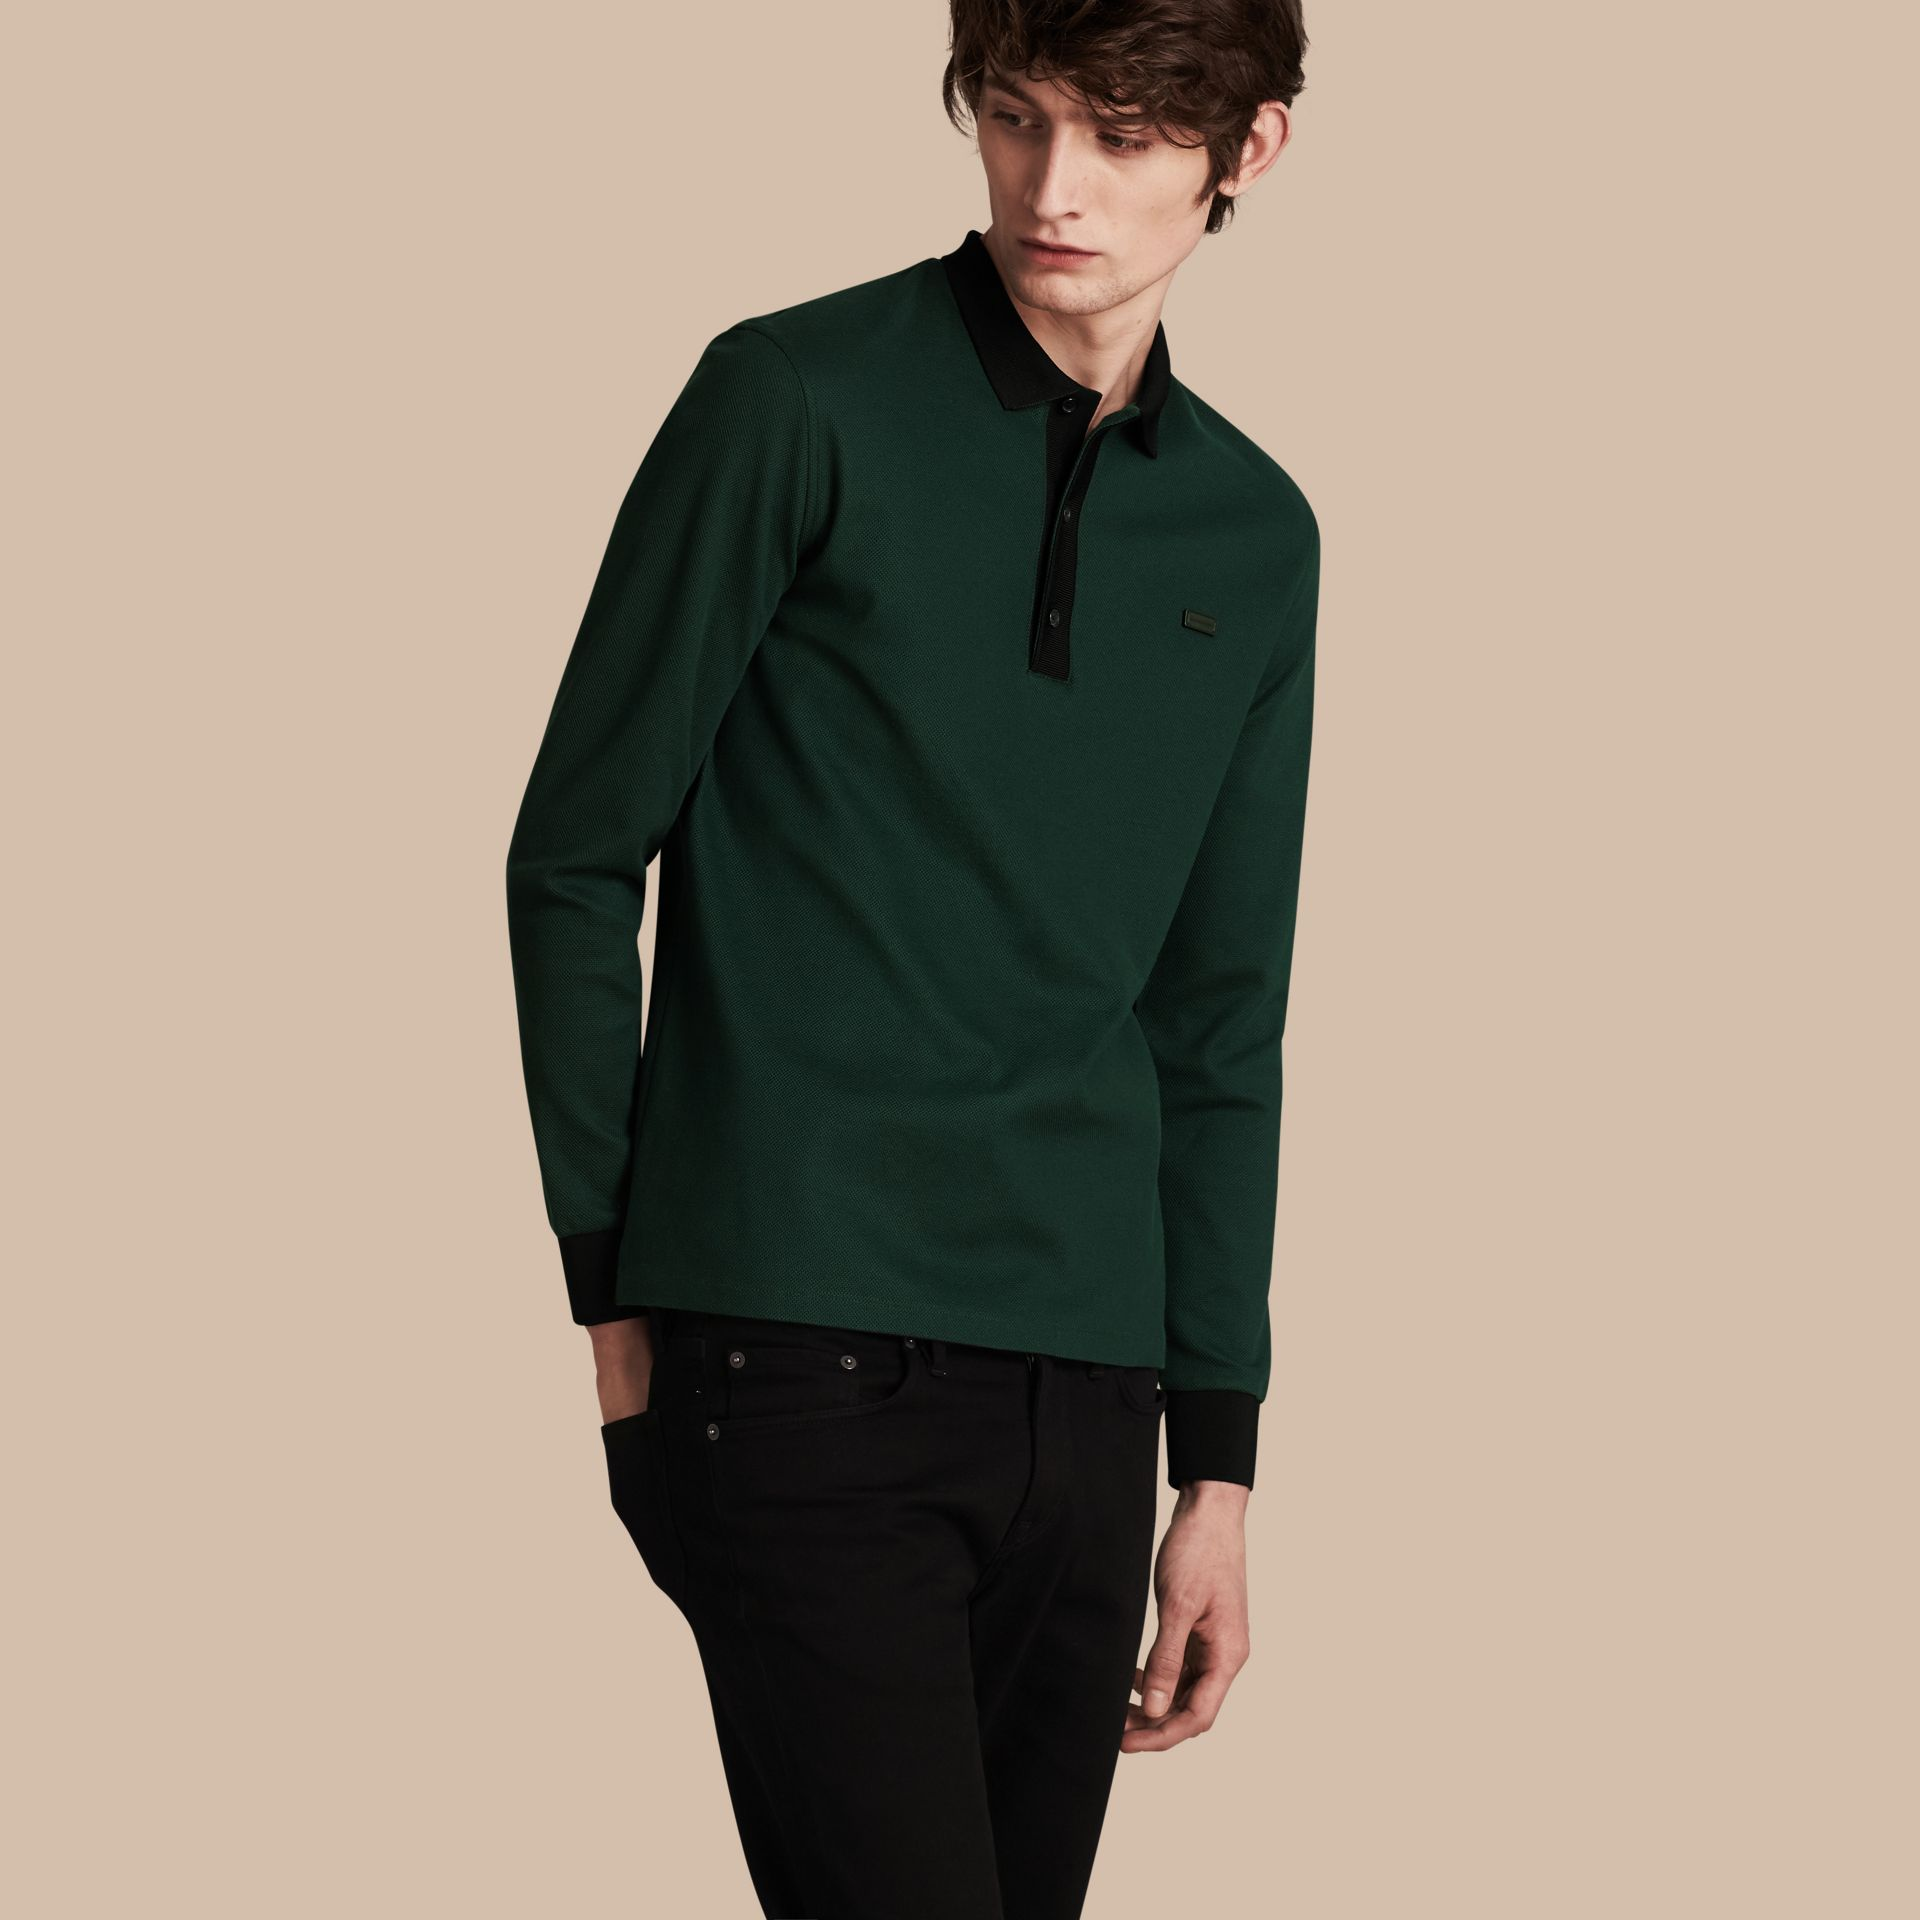 Forest green/black Long-sleeved Cotton Piqué Polo Shirt Forest Green/black - gallery image 1